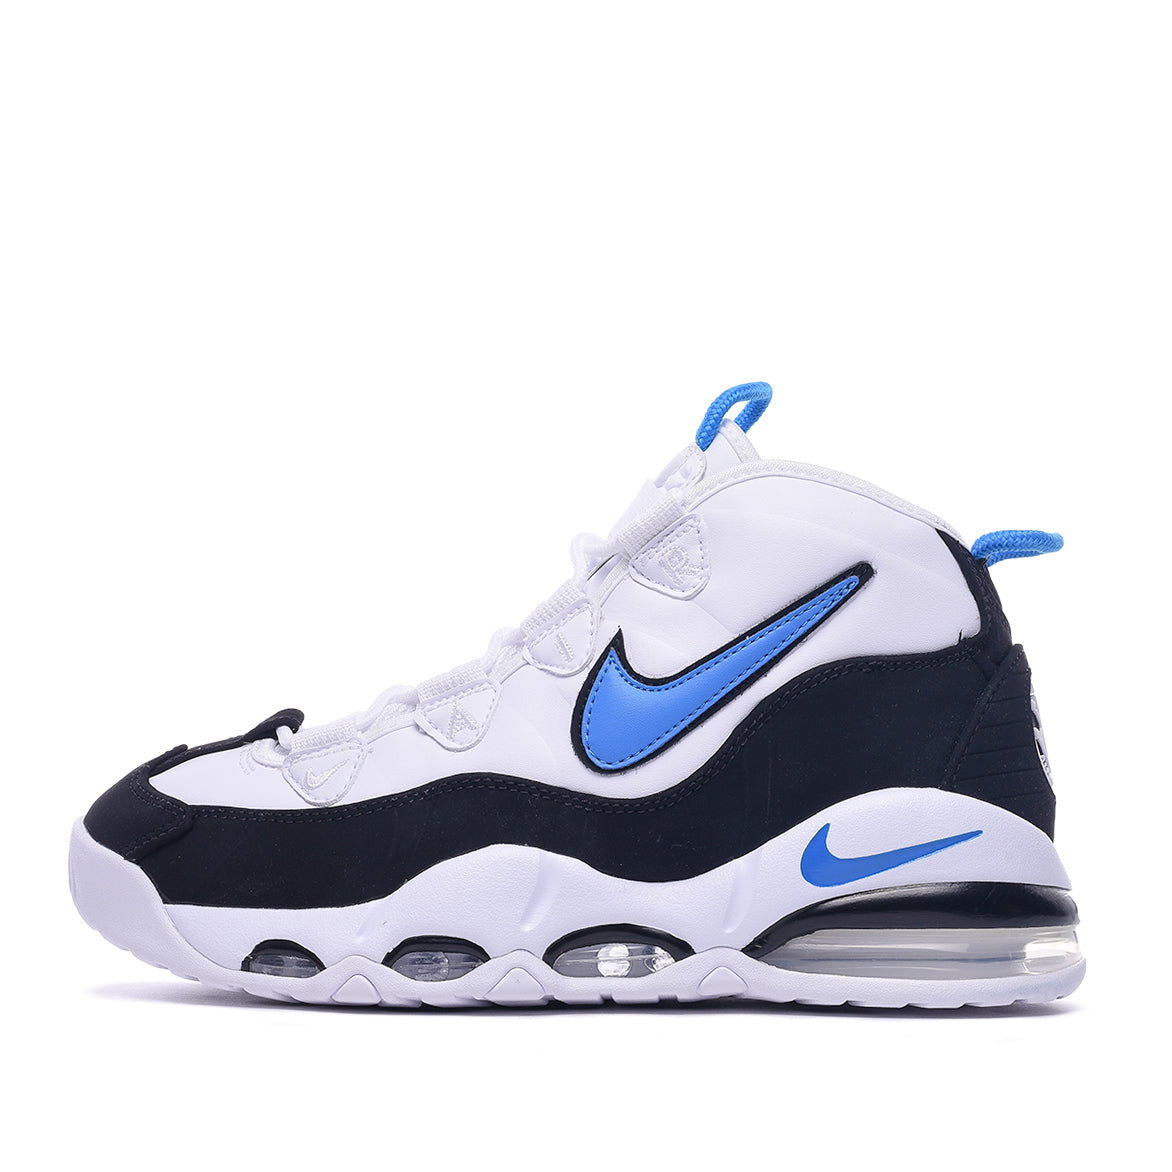 AIR MAX UPTEMPO '95 - WHITE / PHOTO BLUE / BLACK